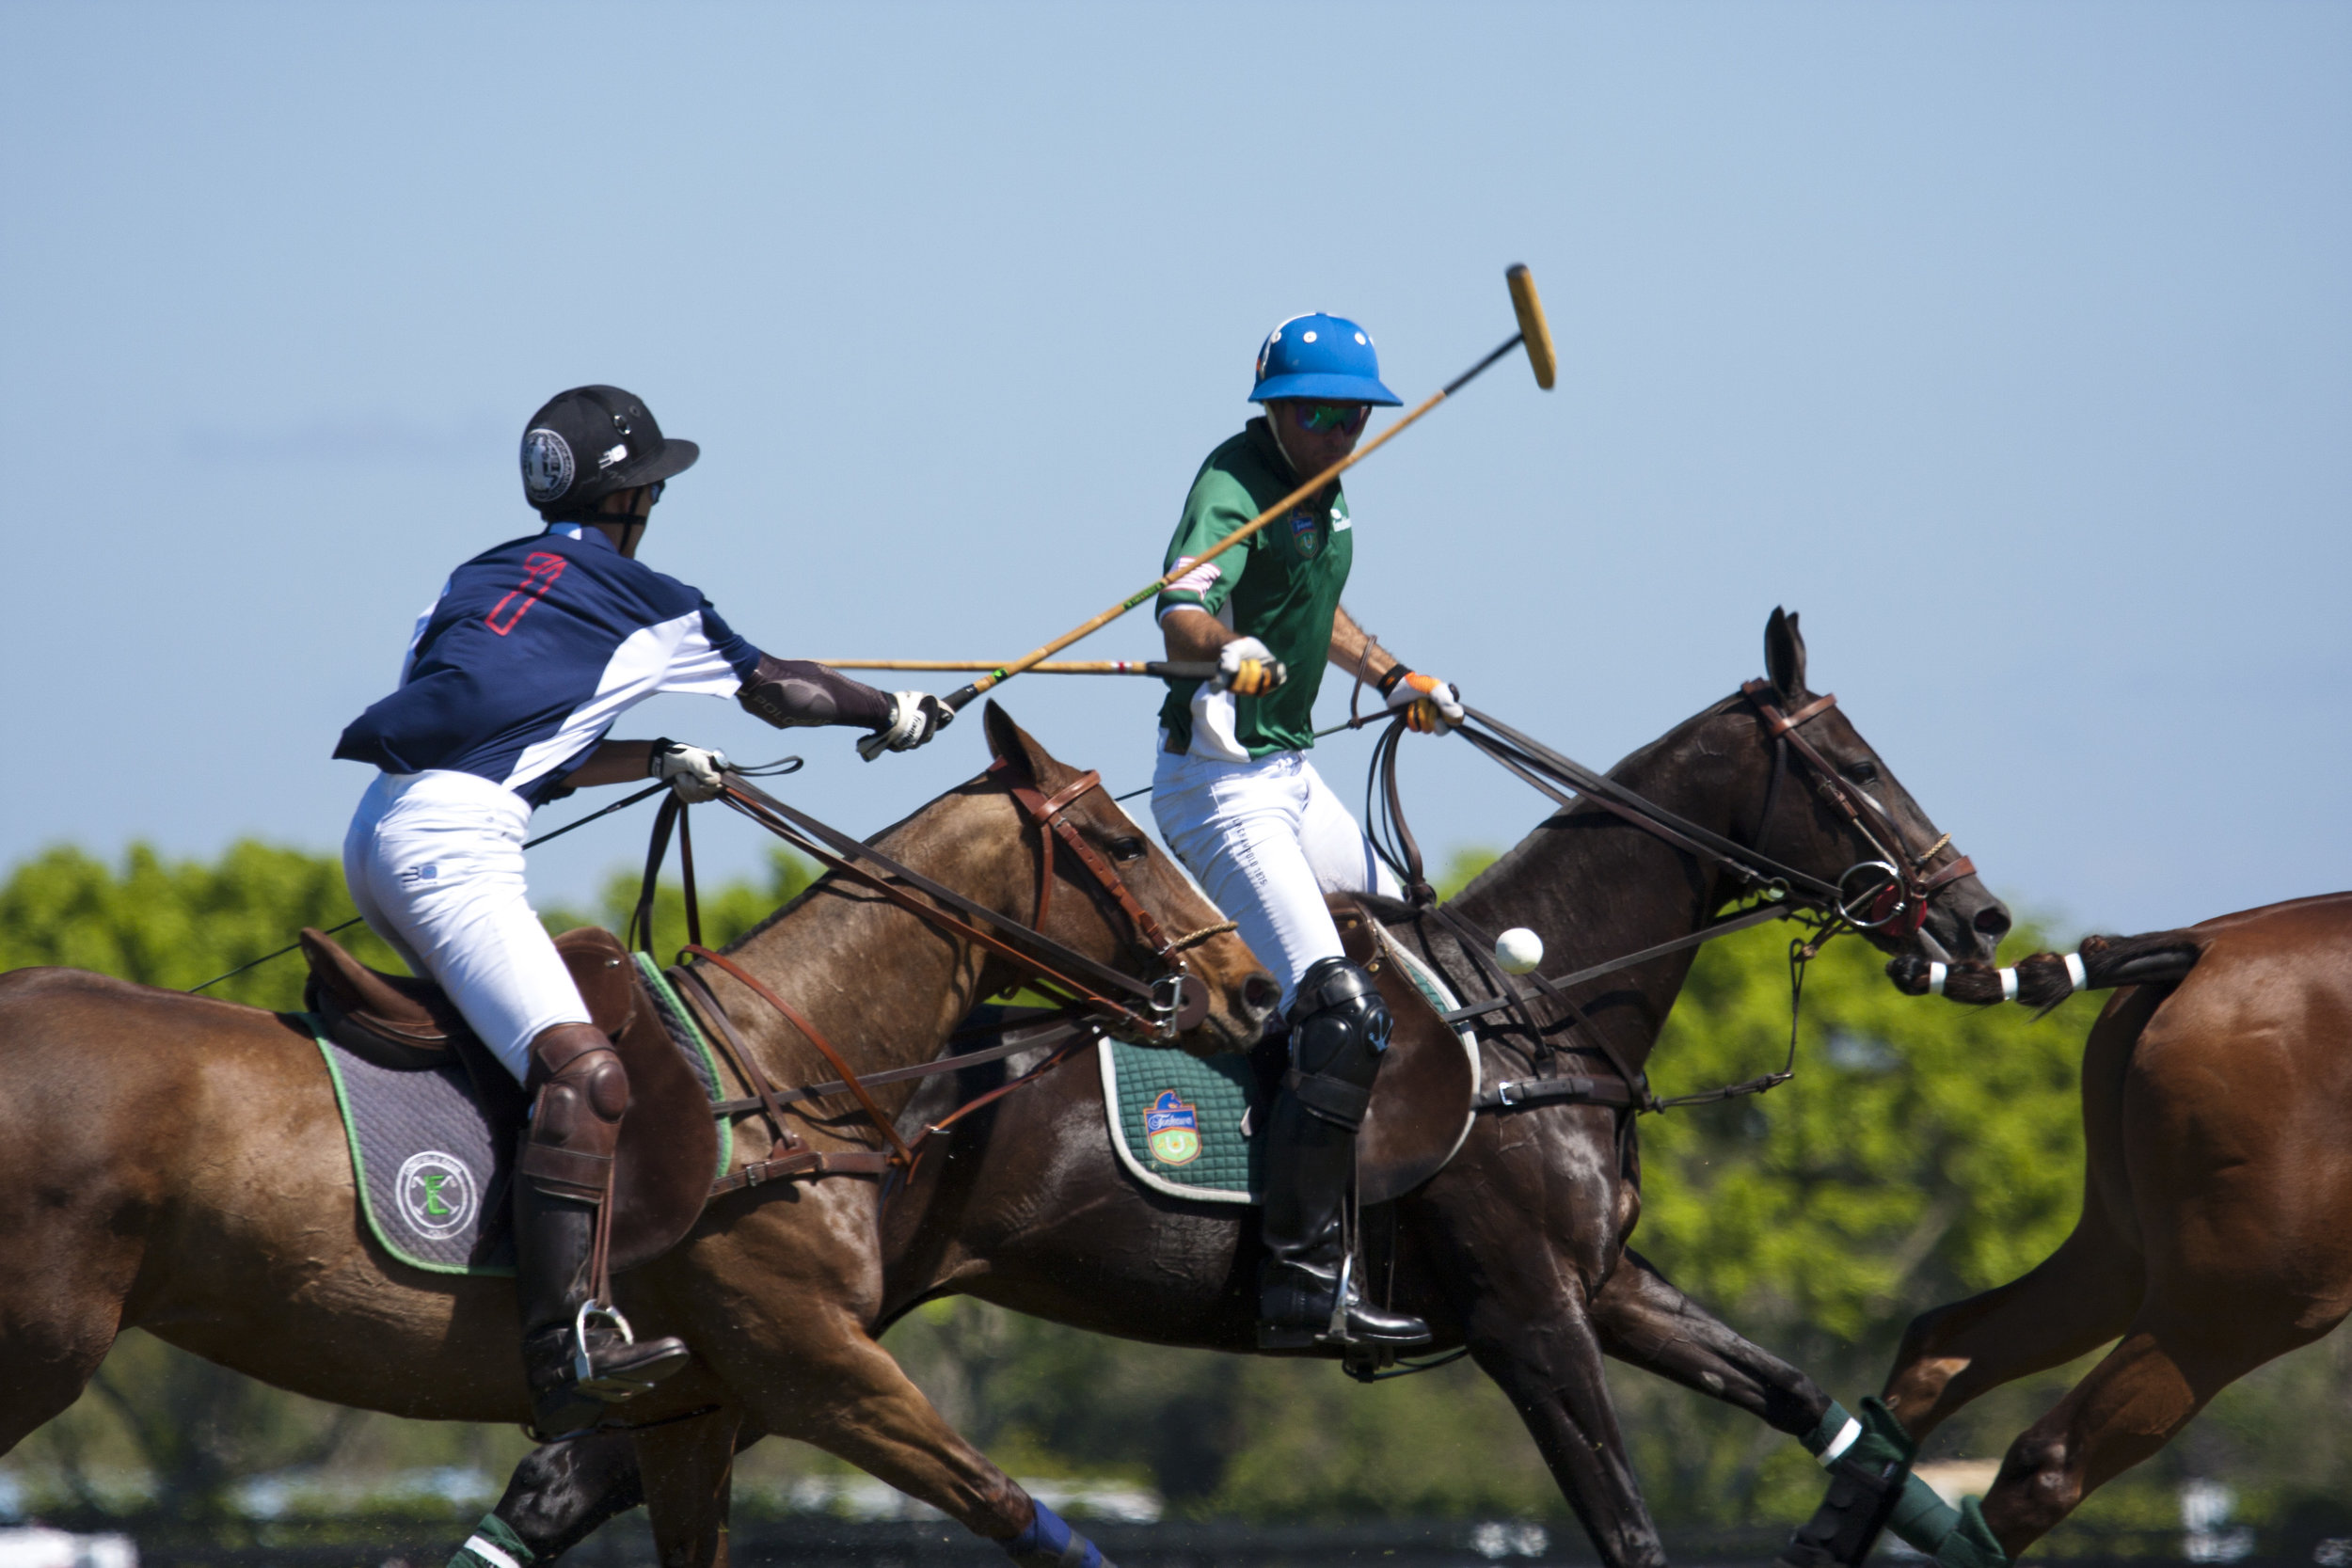 3-9-2018-Juanse Olivera of U.S. Polo Assn. goes.JPG